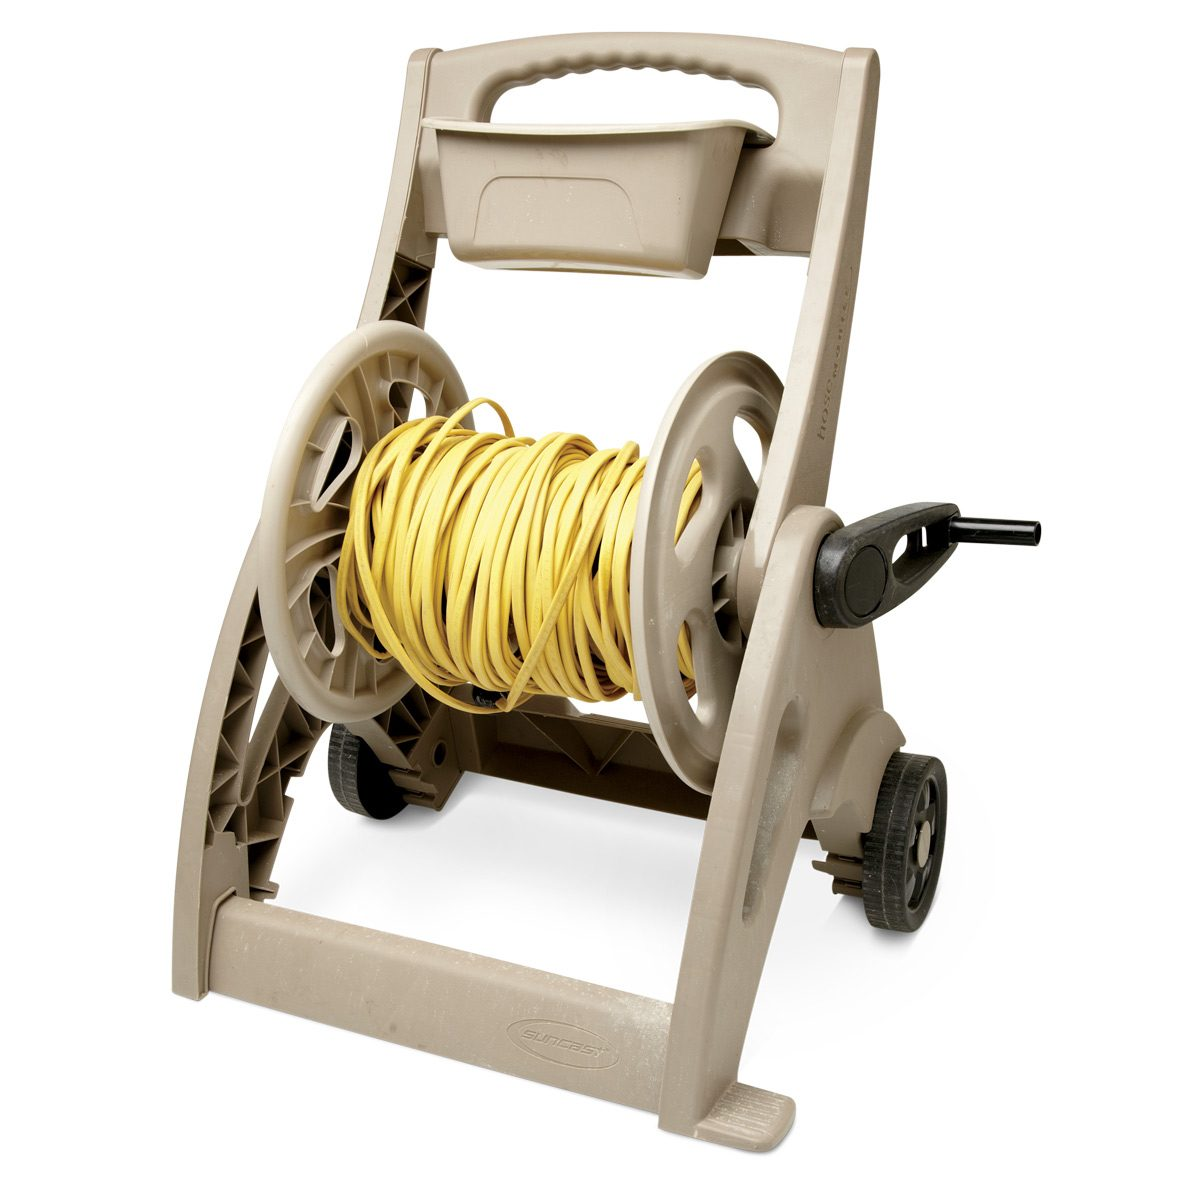 Garage Heater Extension Cord How To Use A Garden Hose Reel In Your Workshop The Family Handyman